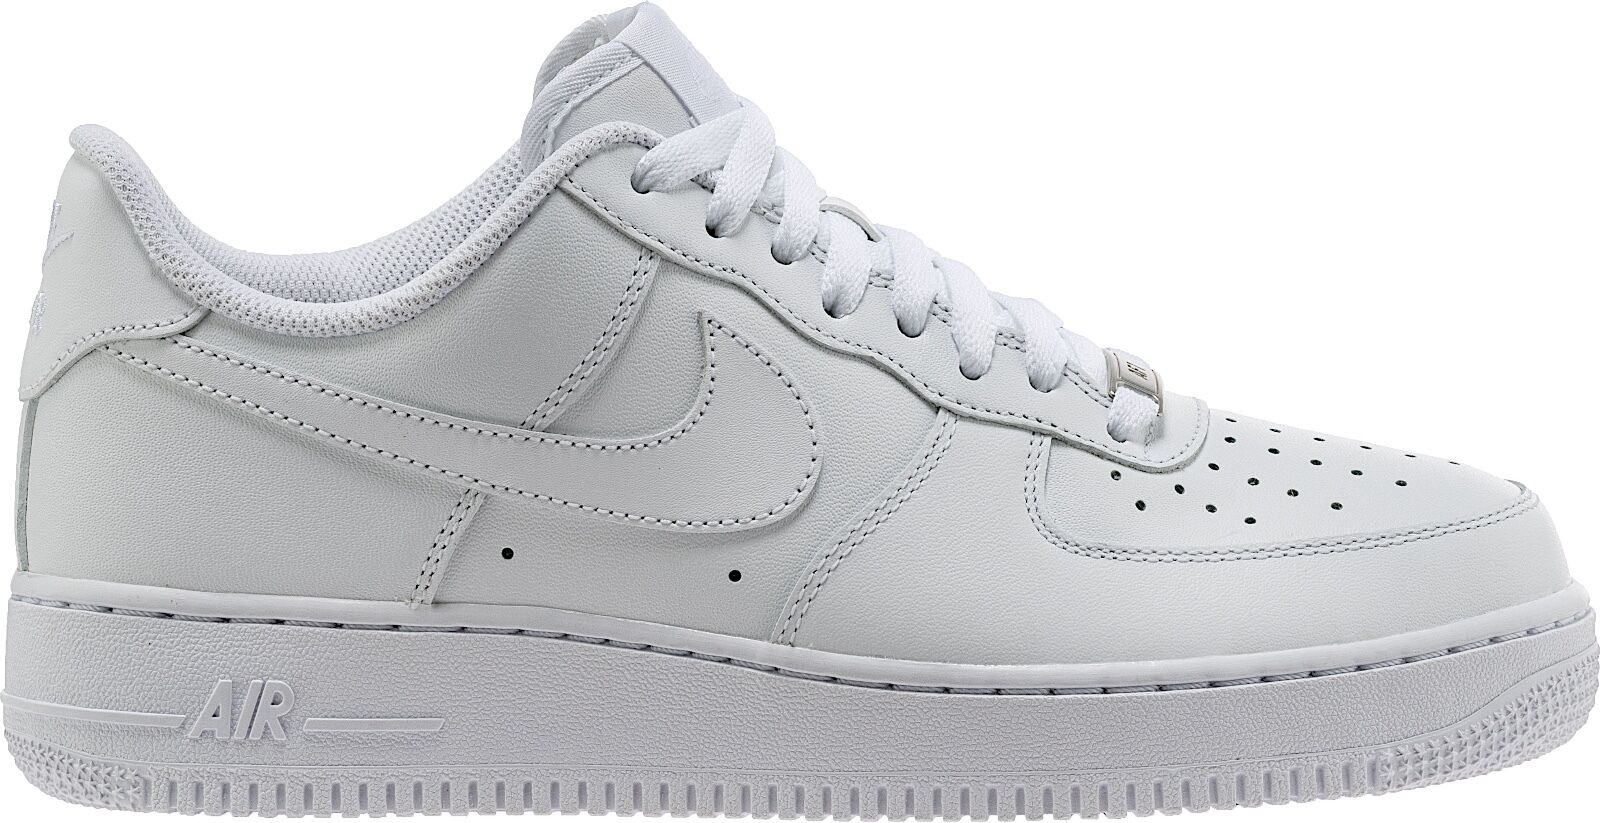 NIKE AIR FORCE 1 LOW Uomo CLASSIC OG WHITE ALL LEATHER 315122-111 100% AUTHENTIC